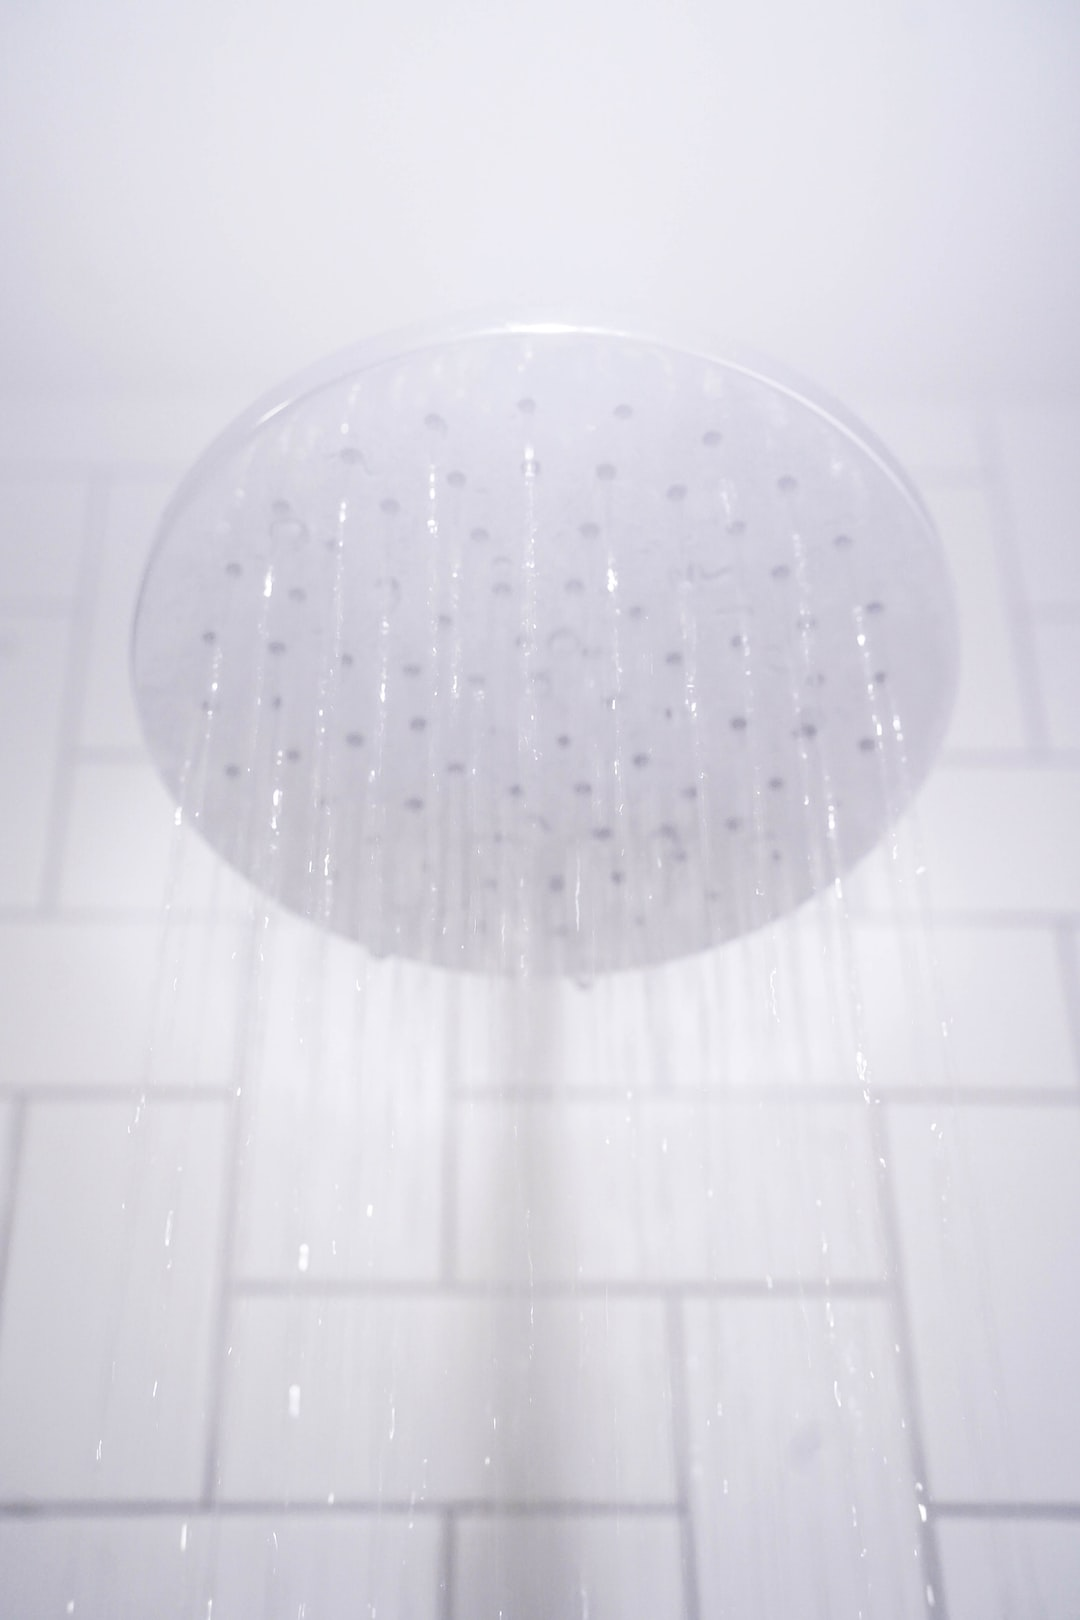 Shower Power: How Do I Fix Low Water Pressure in My Shower?